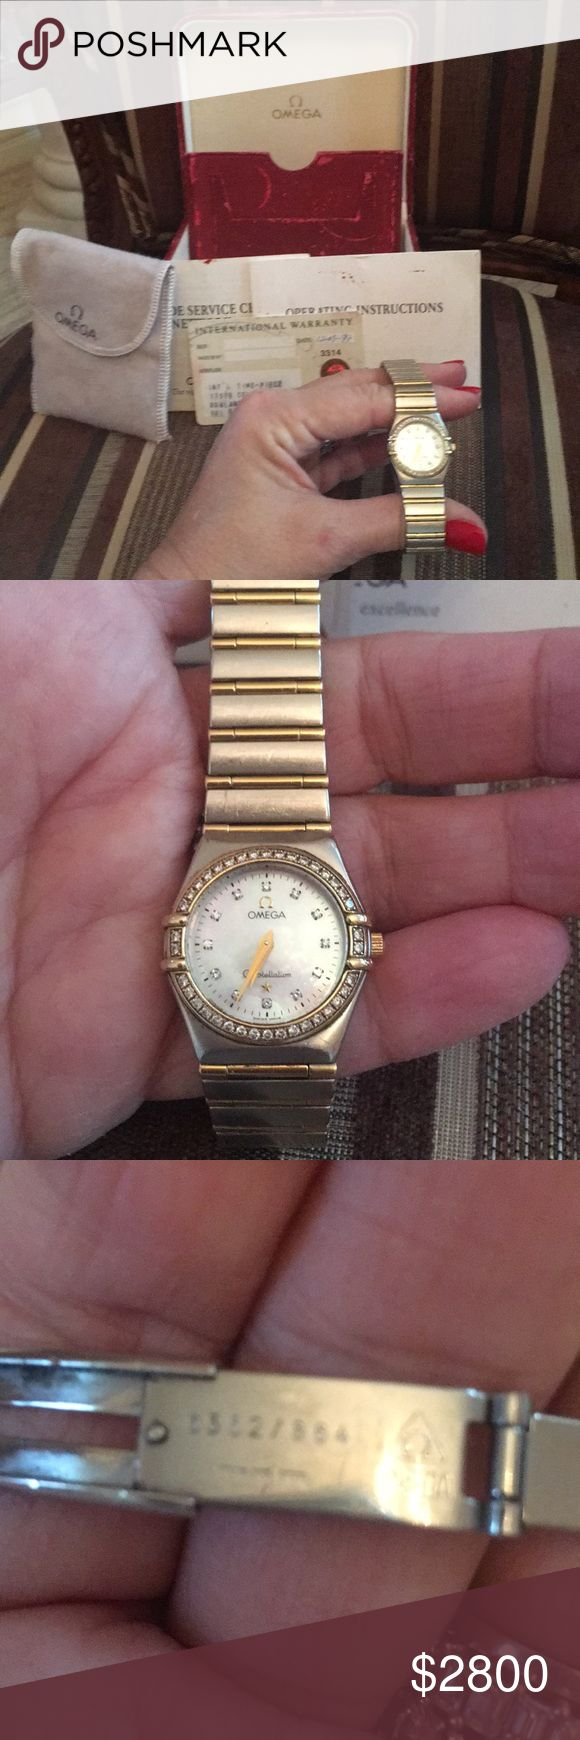 🌹Omega Constellation ladies watch 18 kt gold and stainless Steel Ladies OMEGA CONSTELLATION watch with Diamond and mother of pearl face. Mint Condition. Can have links added or removed for sizing by reputable jeweler. All original documentation and original box included. Box is a little beat up on outside but not inside which is funny because always  sat in drawer . Only serious offers please. Omega Jewelry